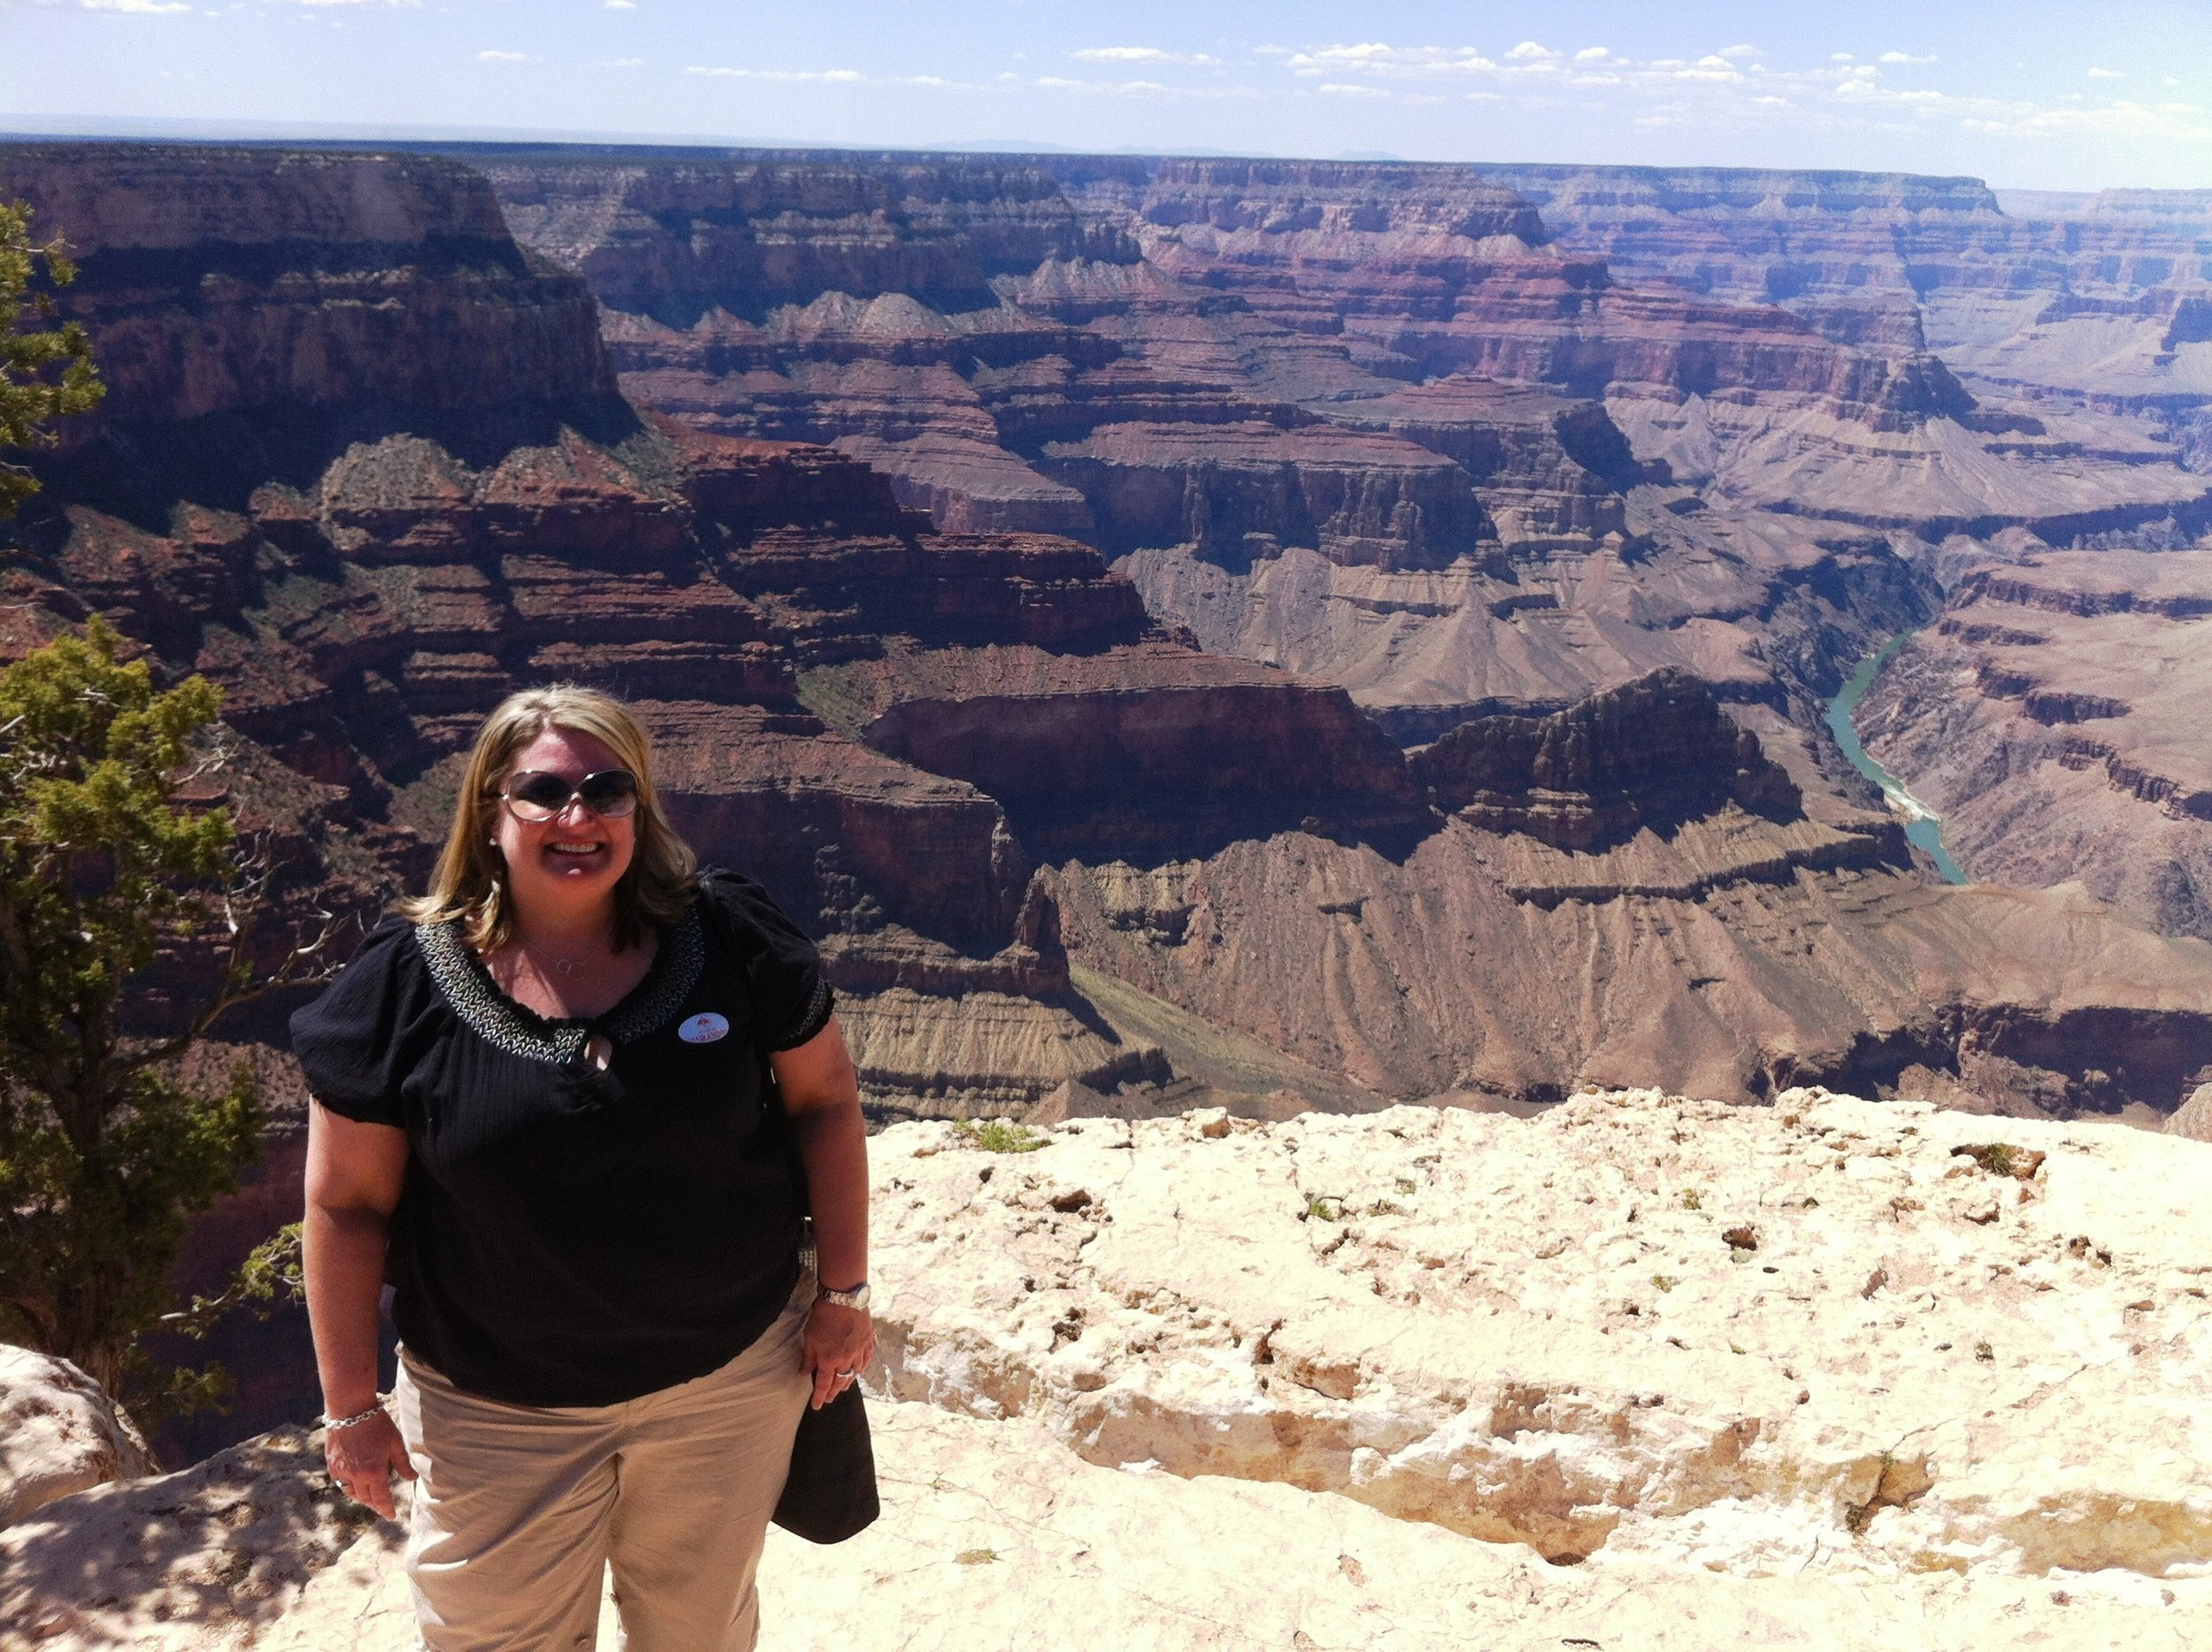 Traveling in 2012 - at the Grand Canyon